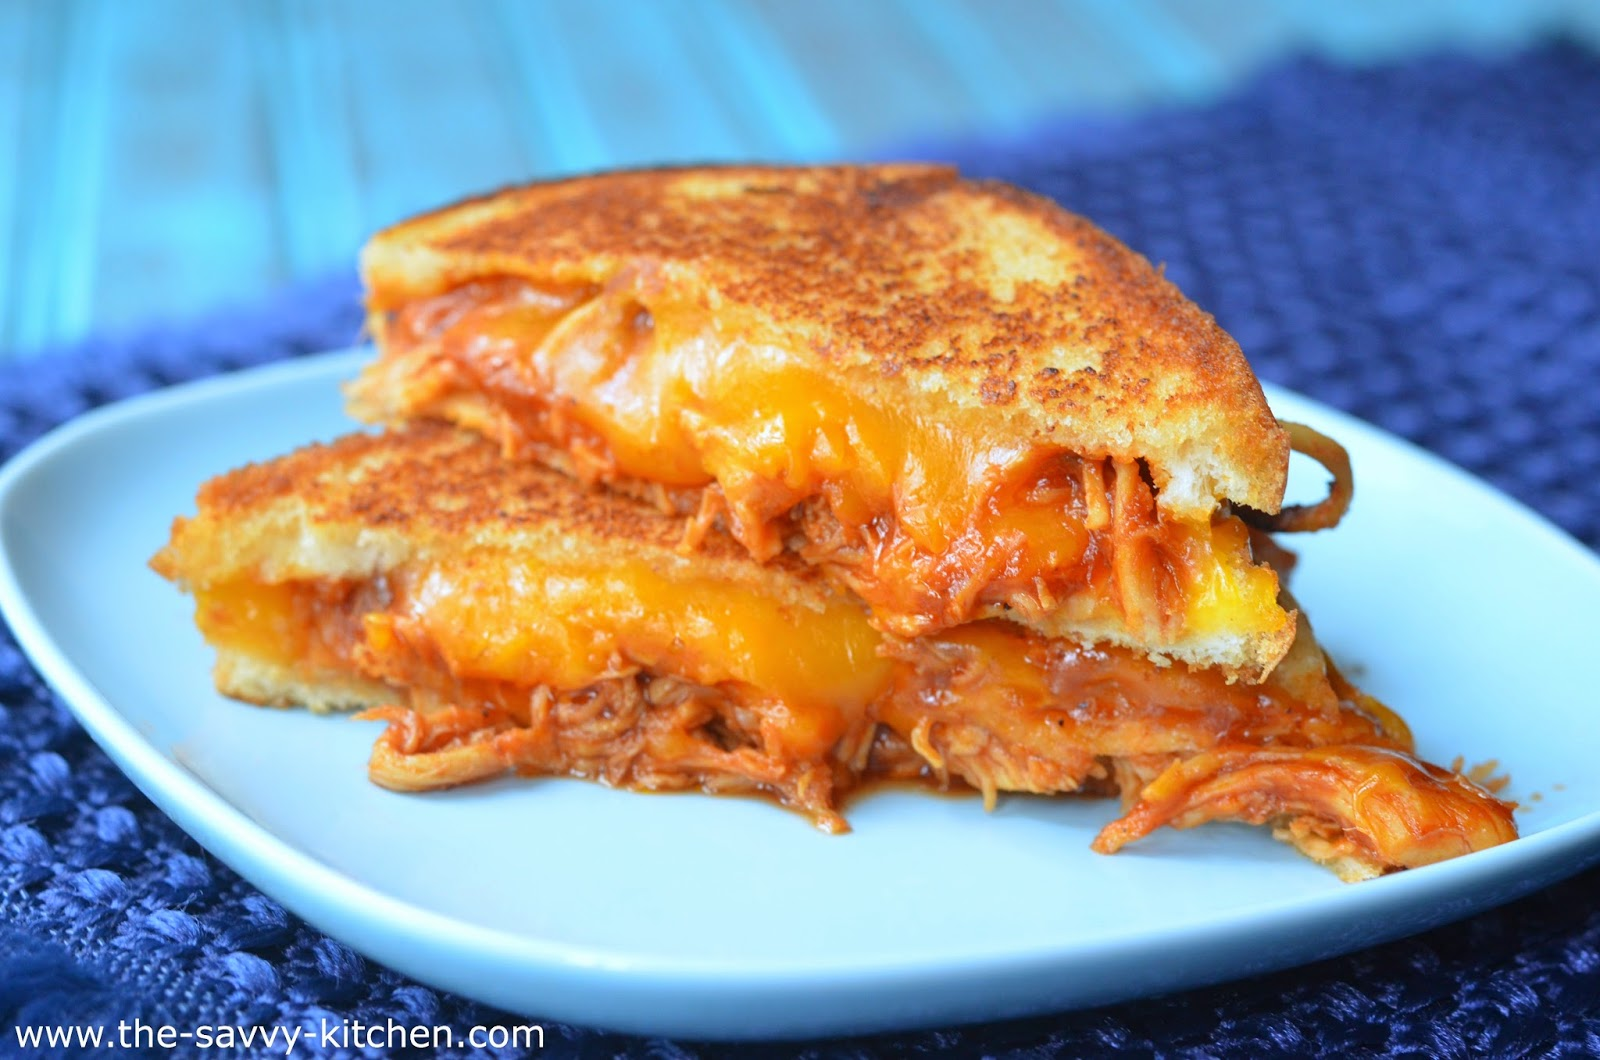 Or You Can Put It In A Grilled Cheese Sandwich Oh My Yum I Ve Learned That The Trick To A Perfect Grilled Cheese Sandwich Is To Cook It Low And Slow